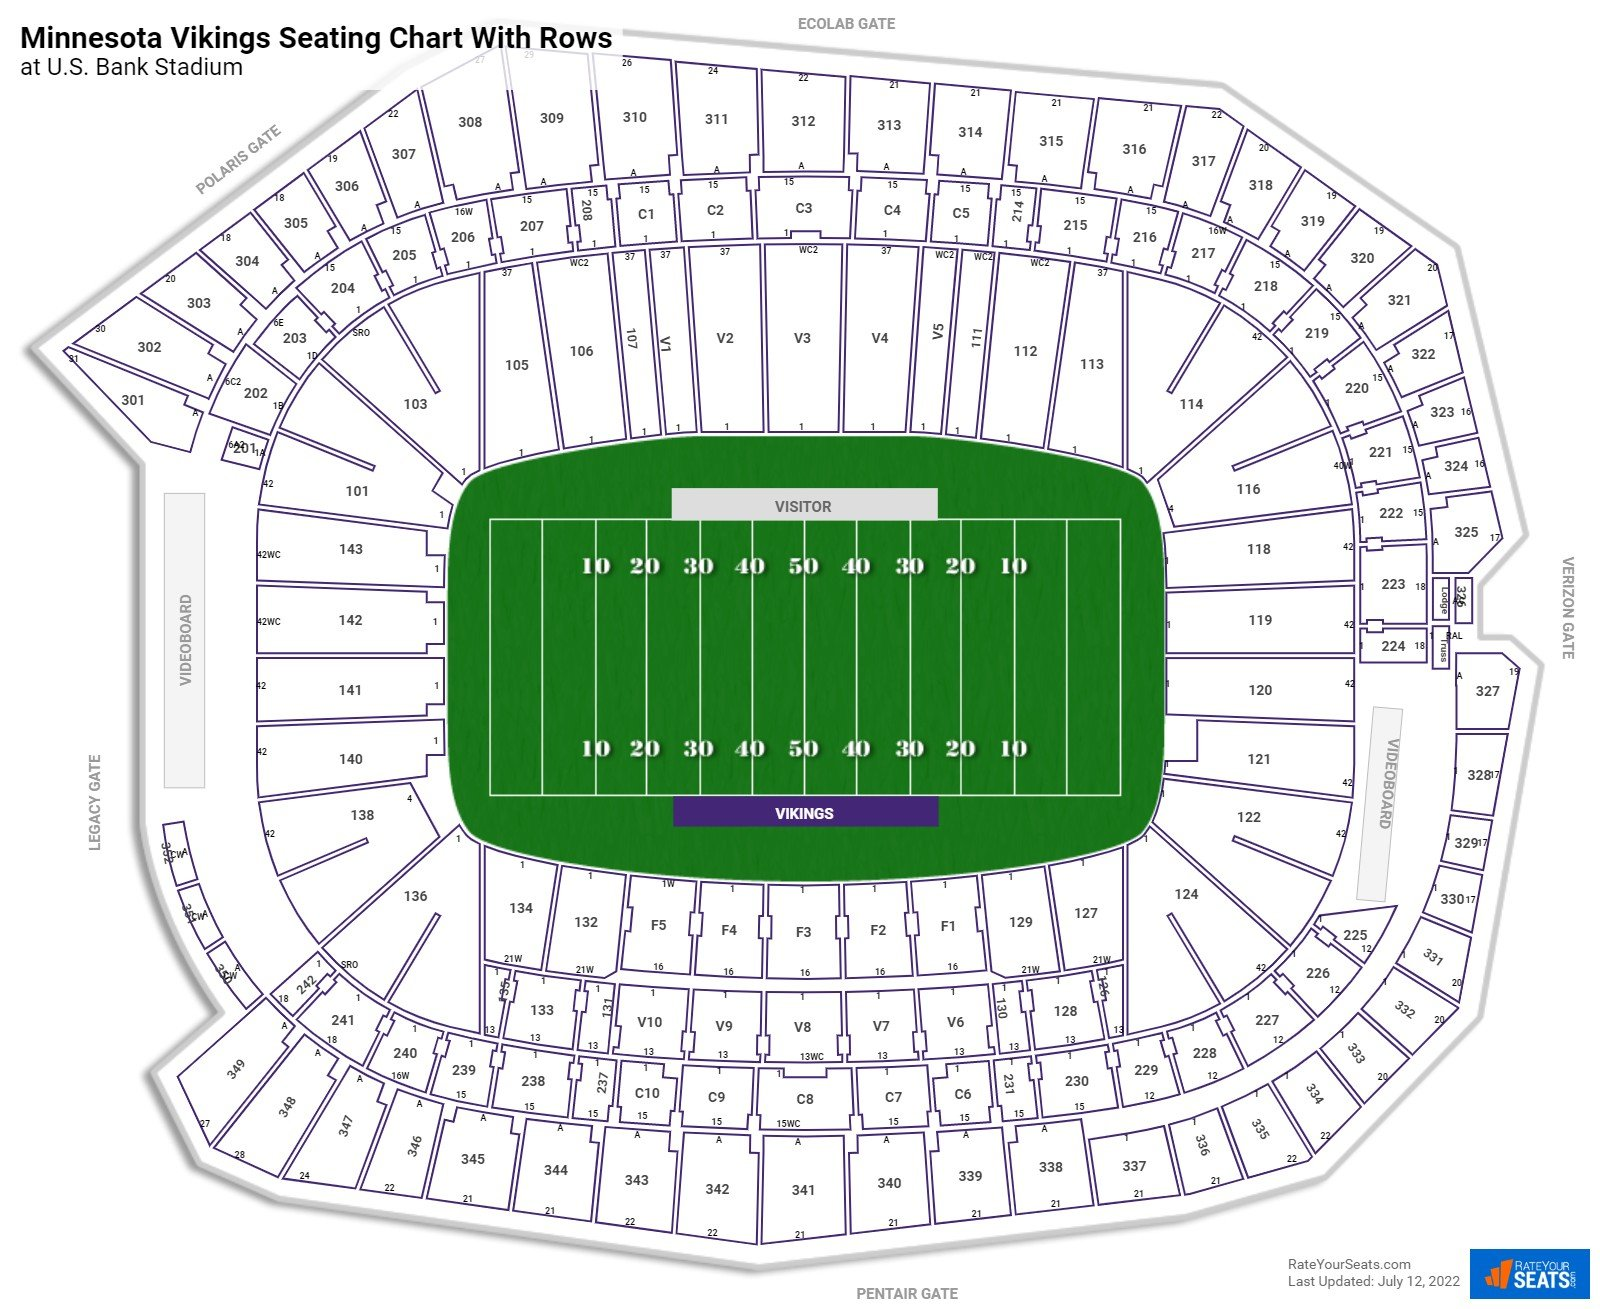 U.S. Bank Stadium seating chart with rows football